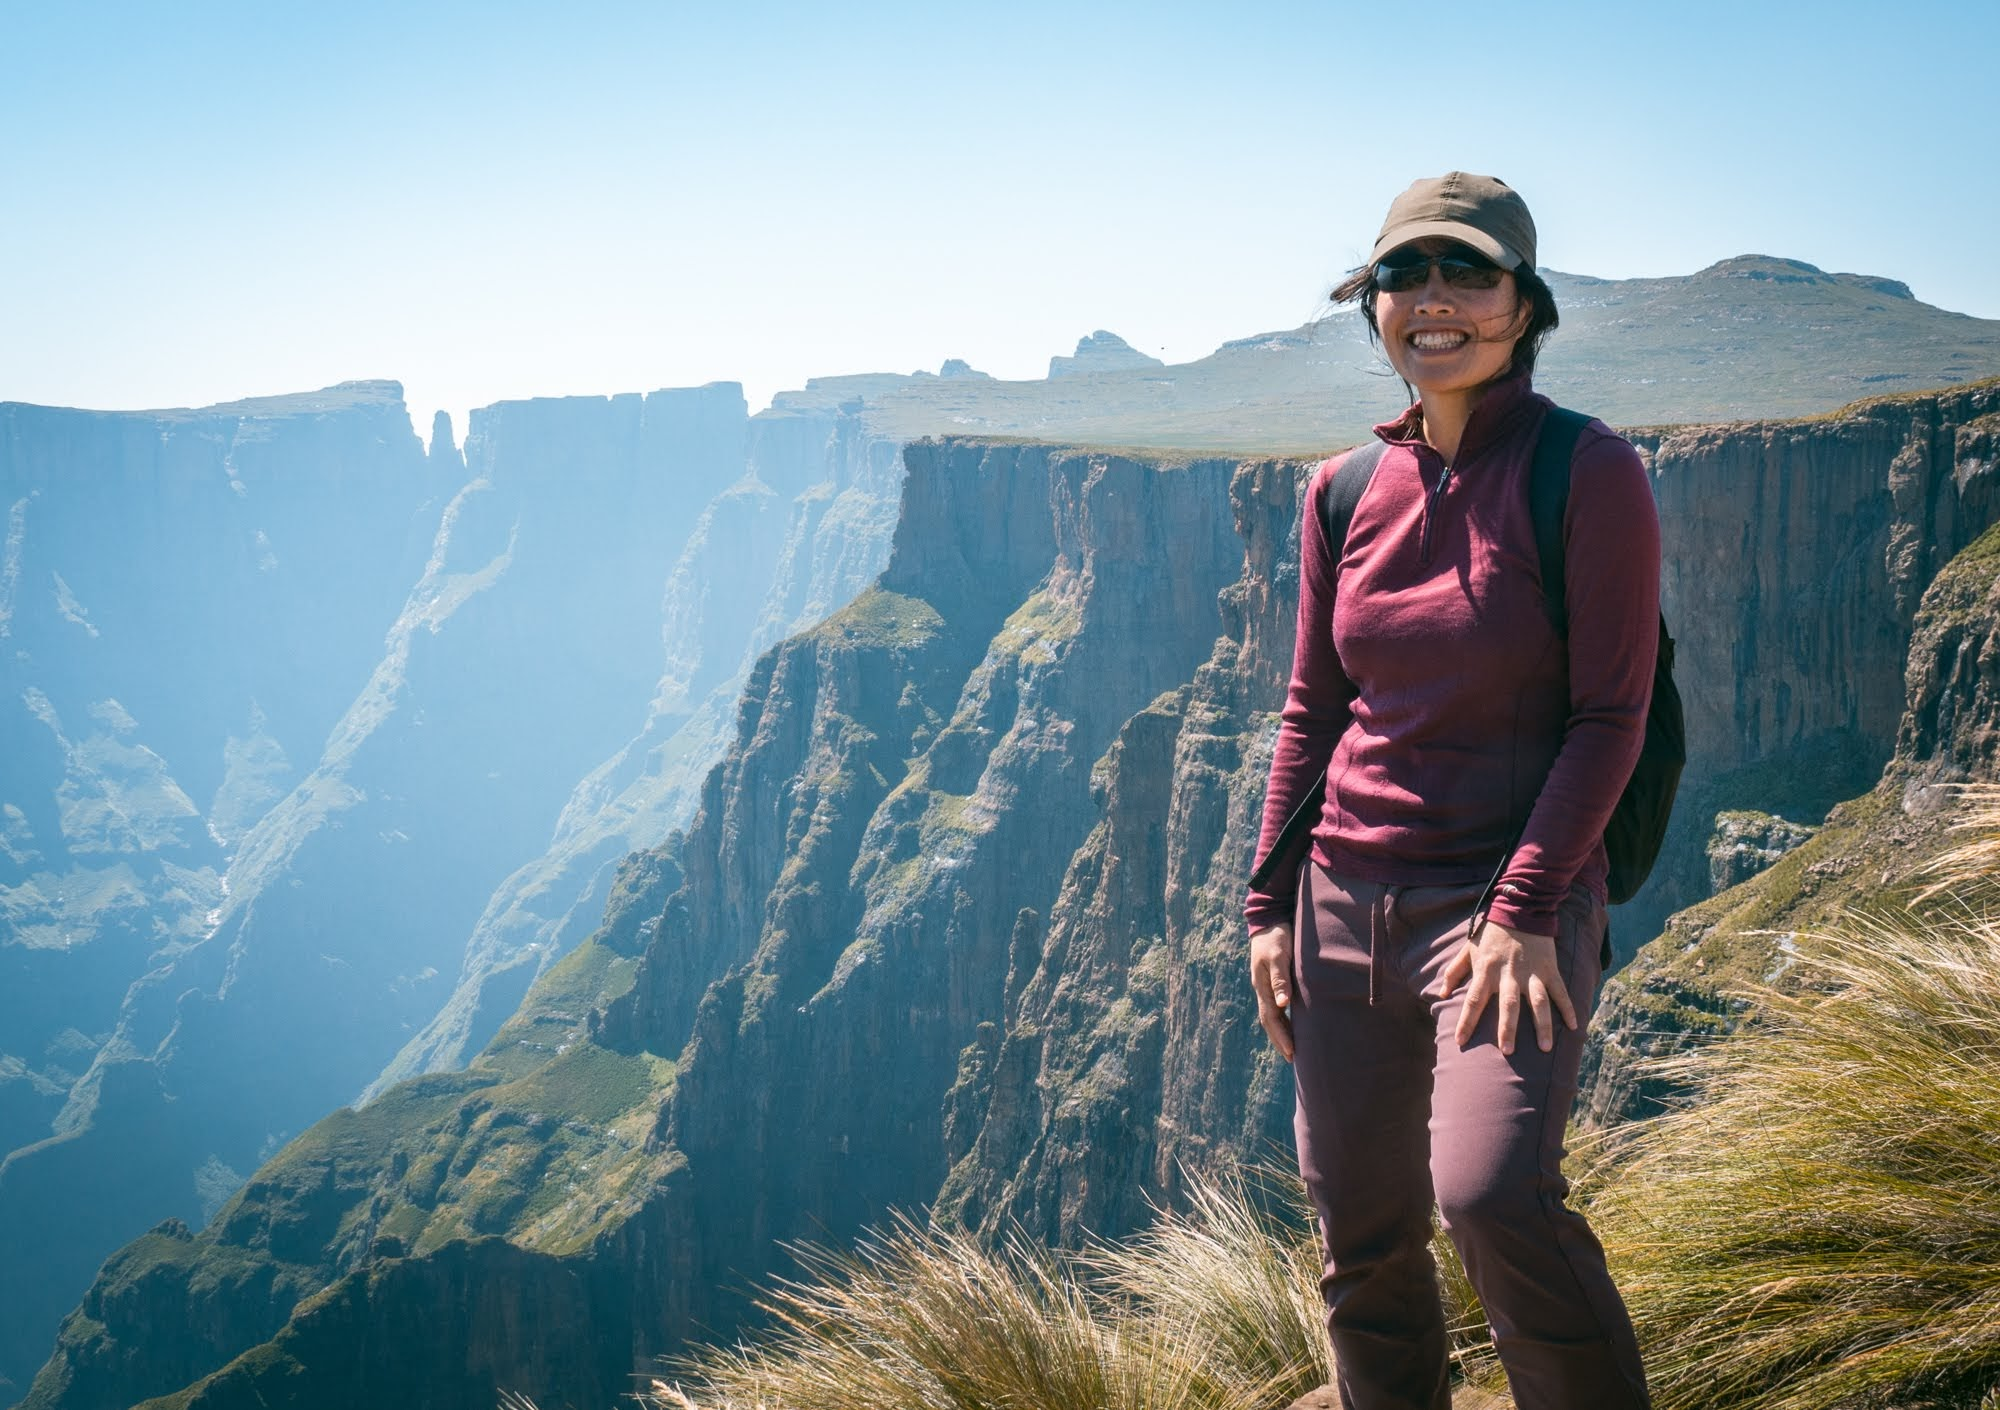 Me near the top of Tugela Falls, South Africa